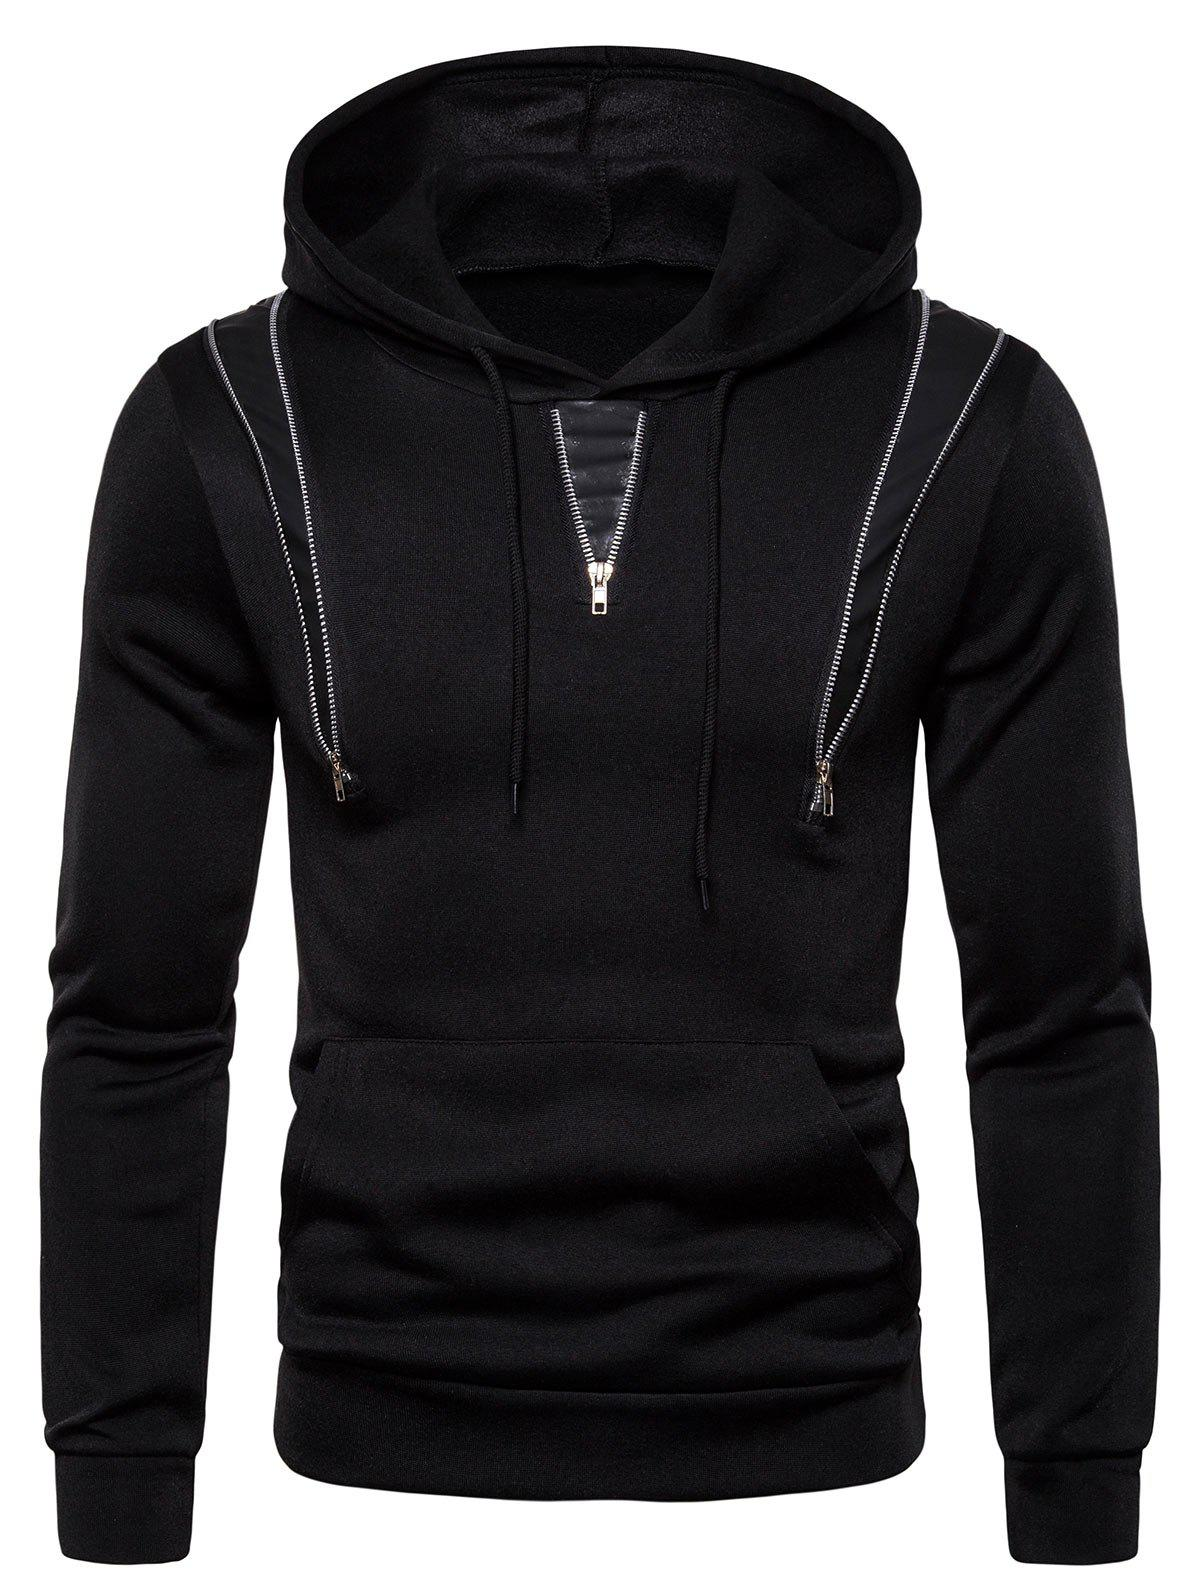 Store Zipper Decorated Color Spliced Casual Hoodie